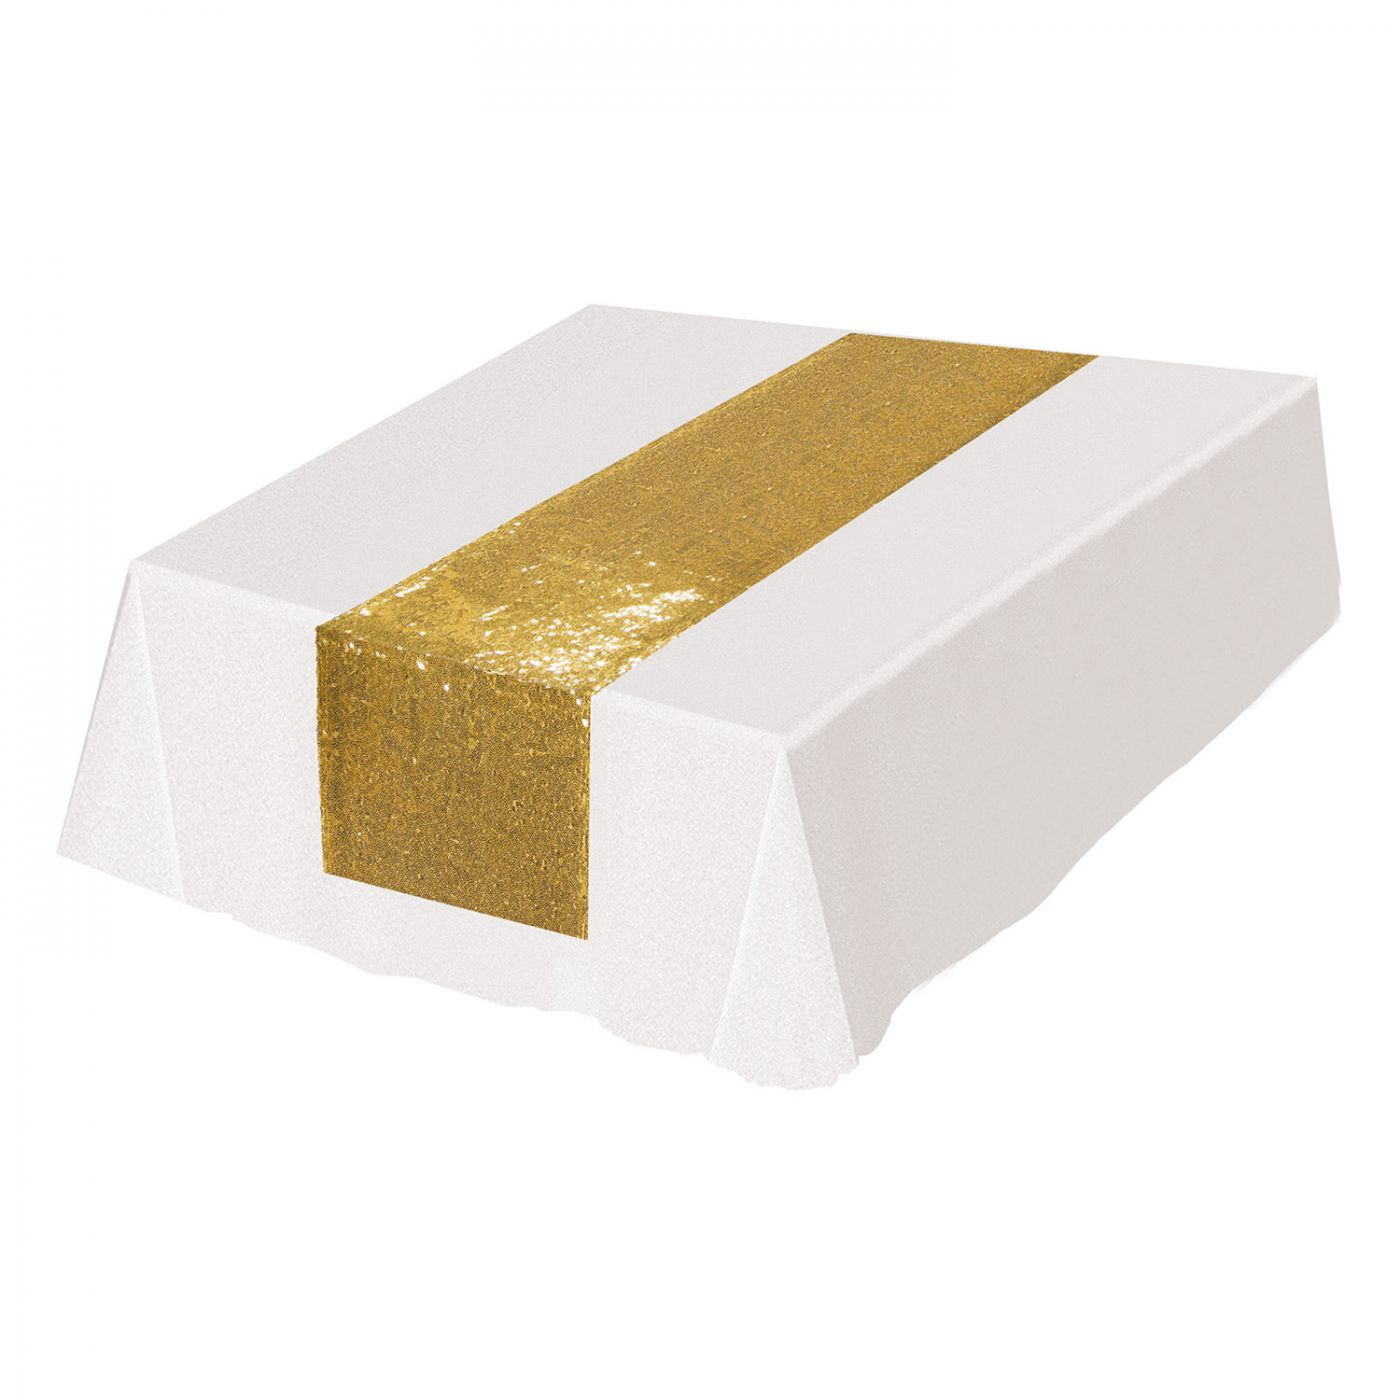 Sequined Table Runner image